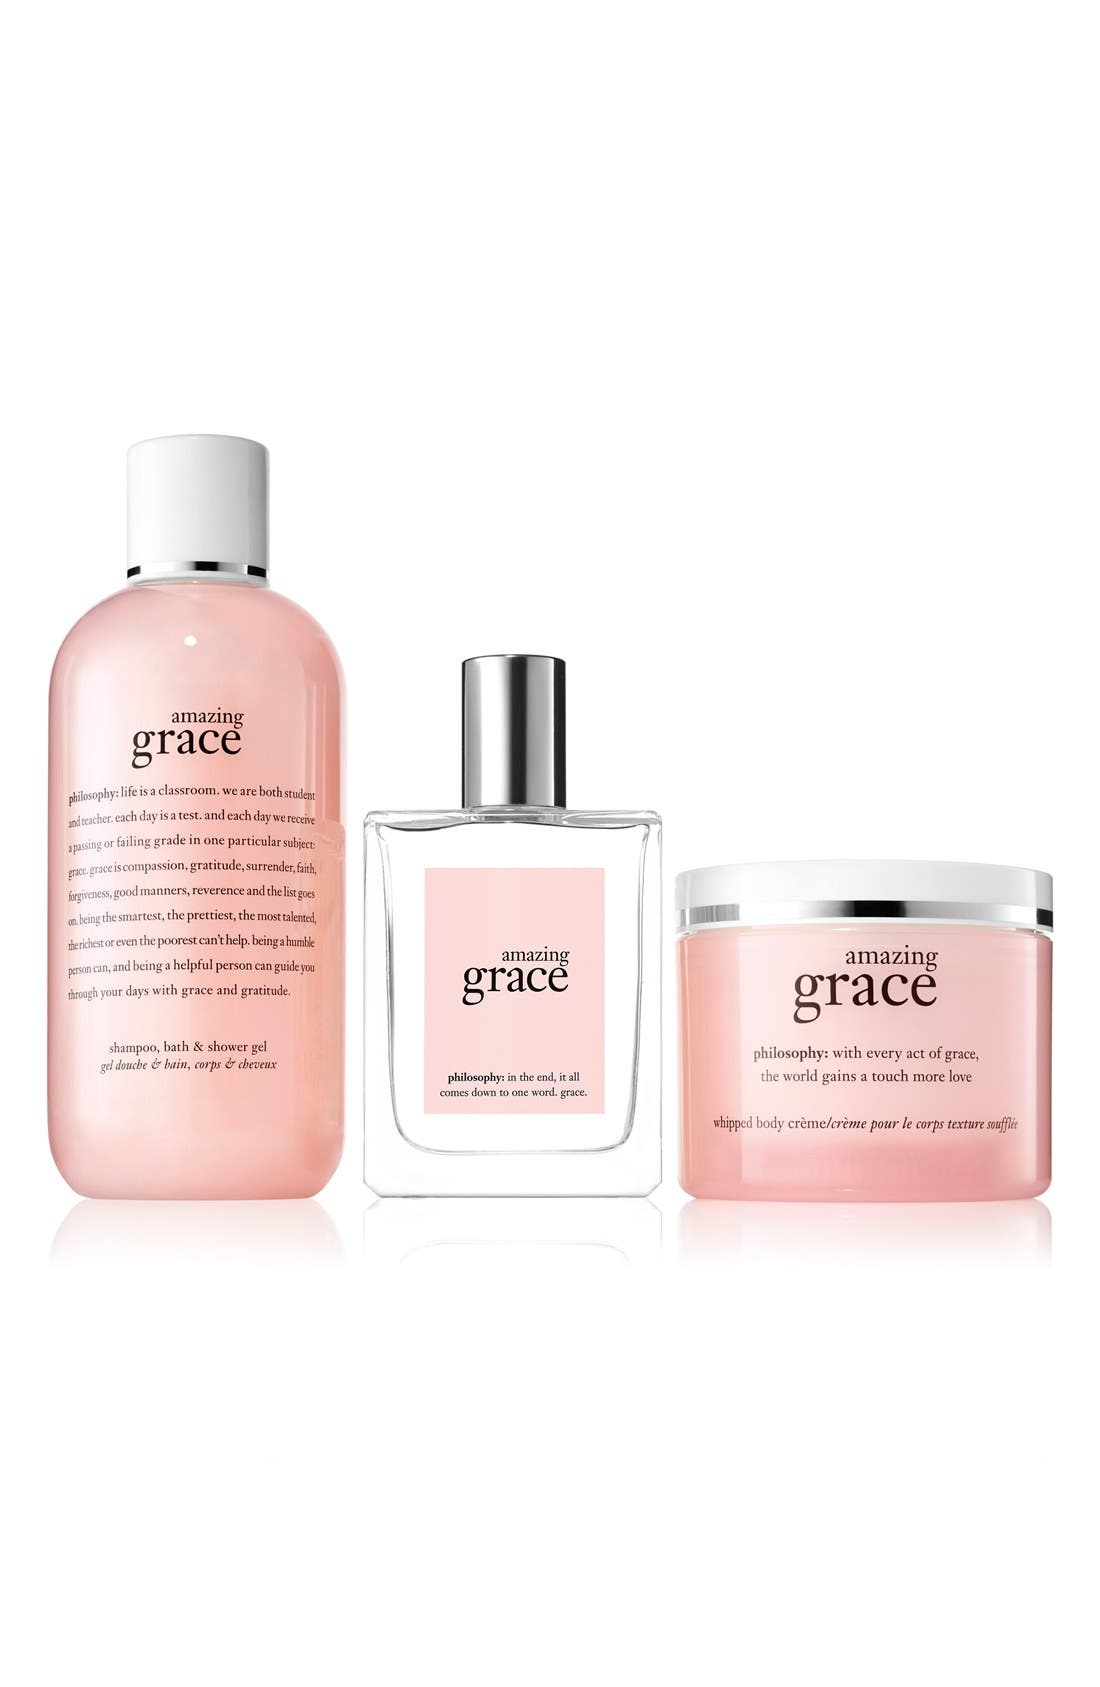 philosophy 'amazing grace' collection (Limited Edition) ($82 Value)